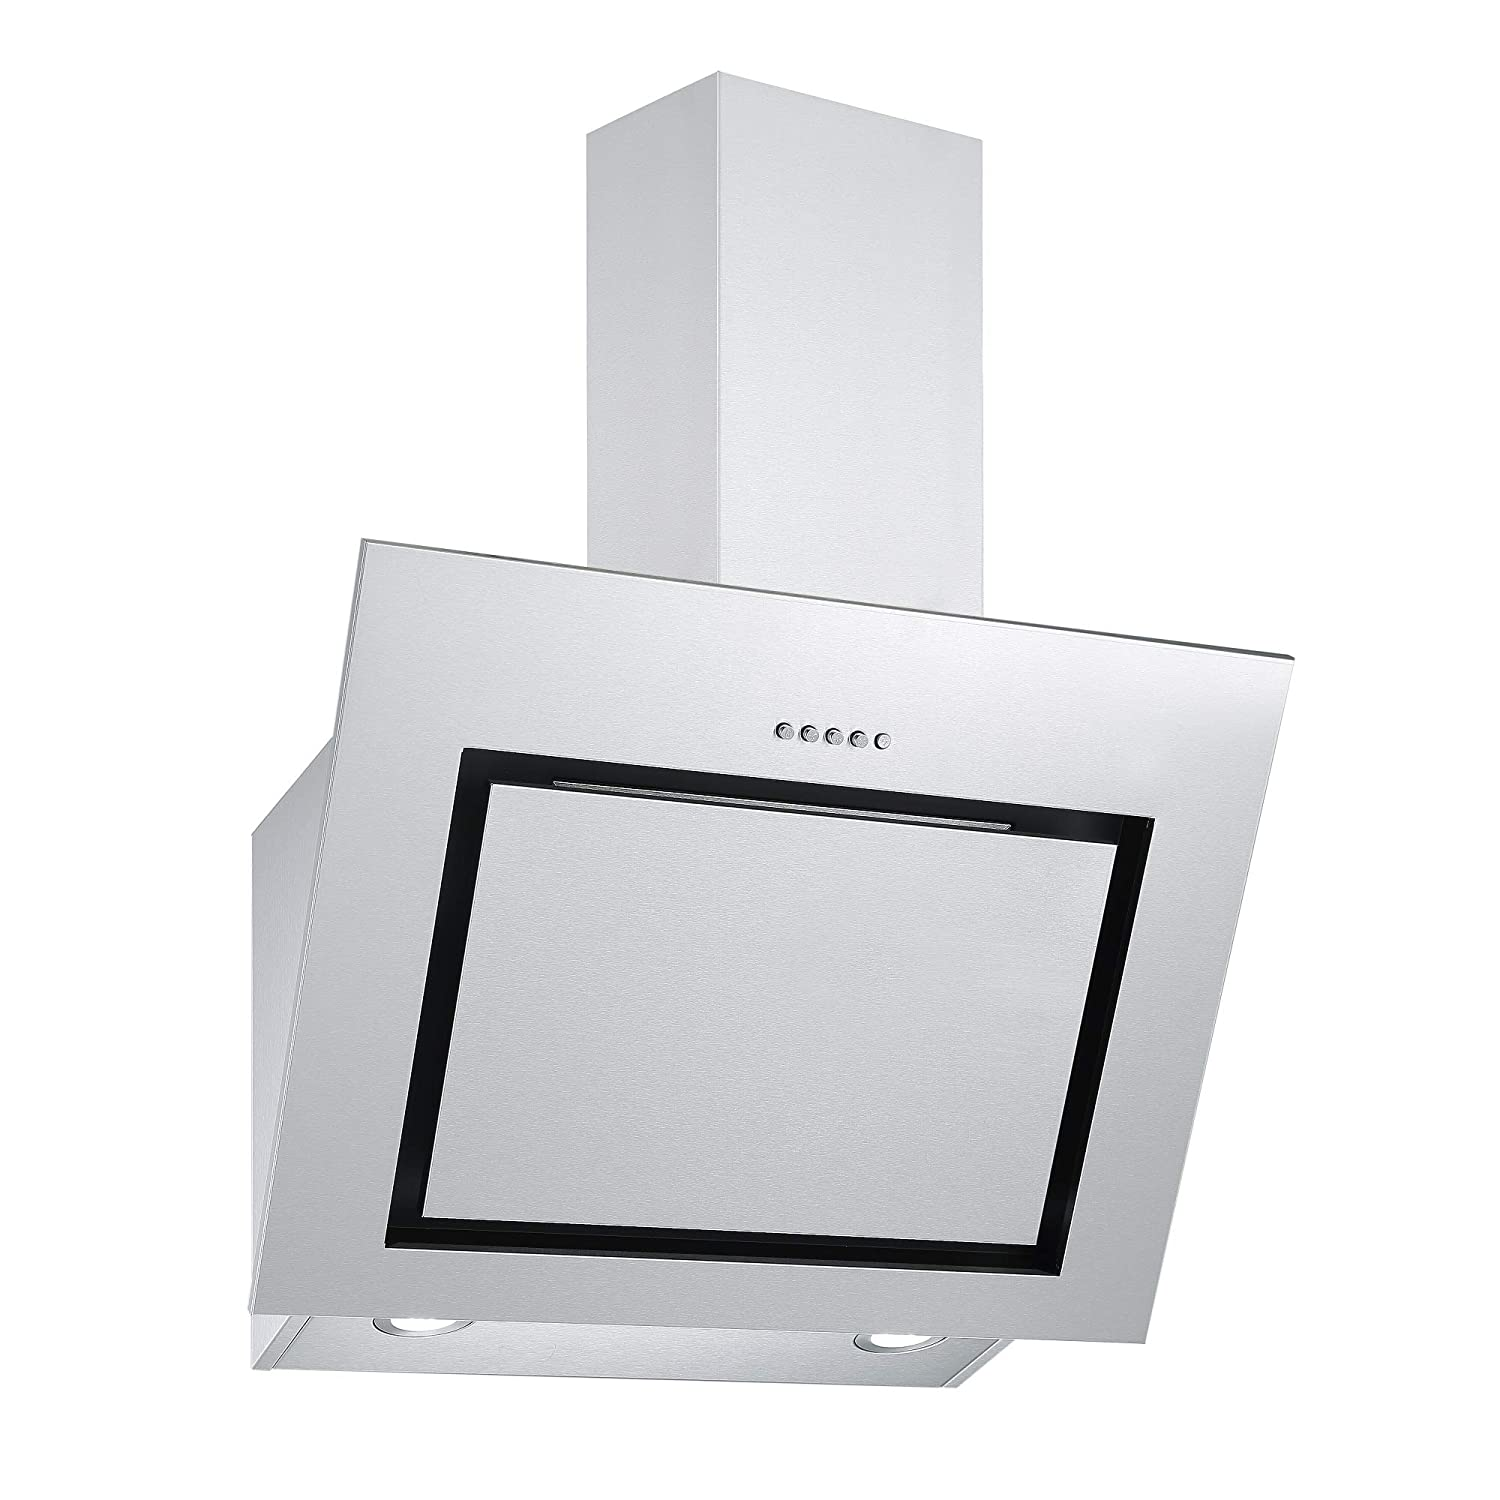 Cookology VER601SS 60cm Angled Stainless Steel Chimney Kitchen Cooker Hood